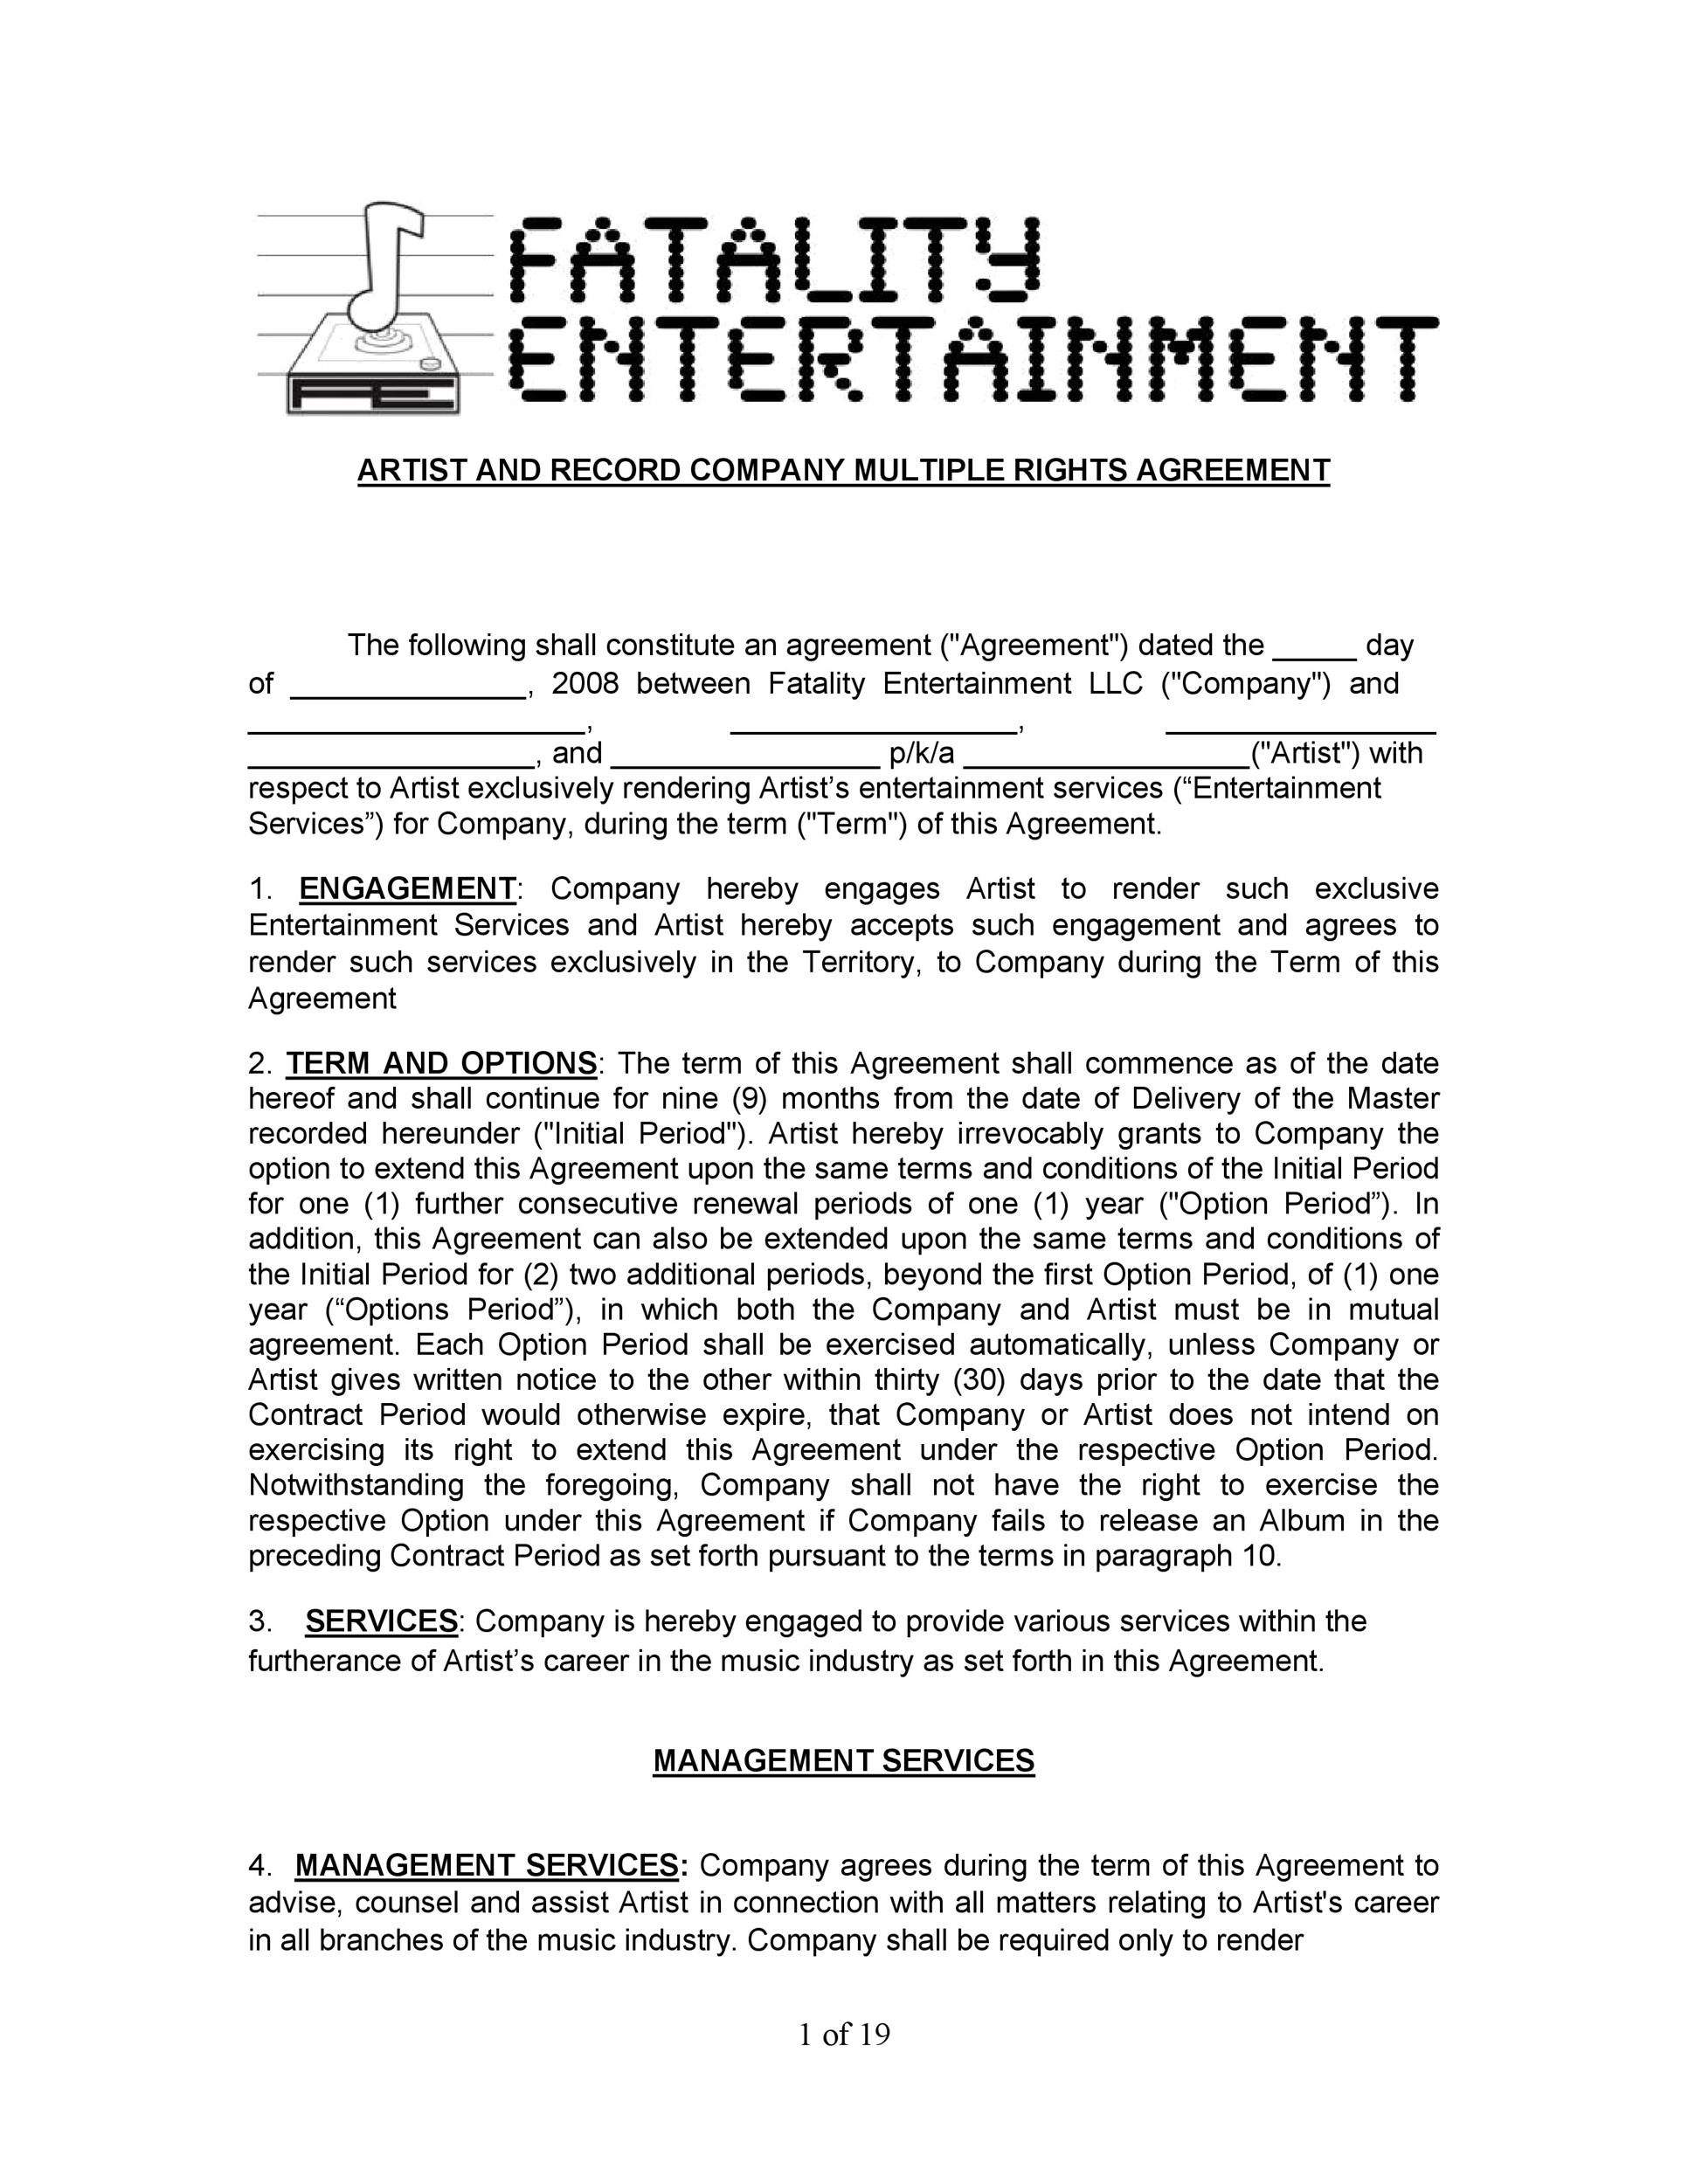 Free artist management contract 18